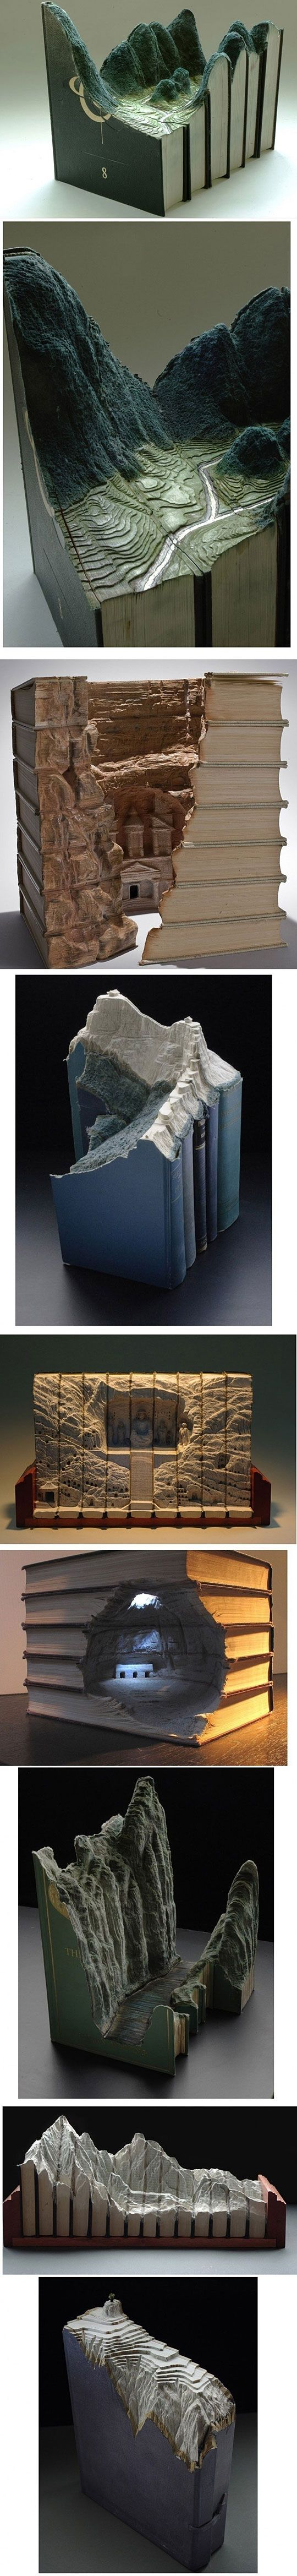 Book carvings